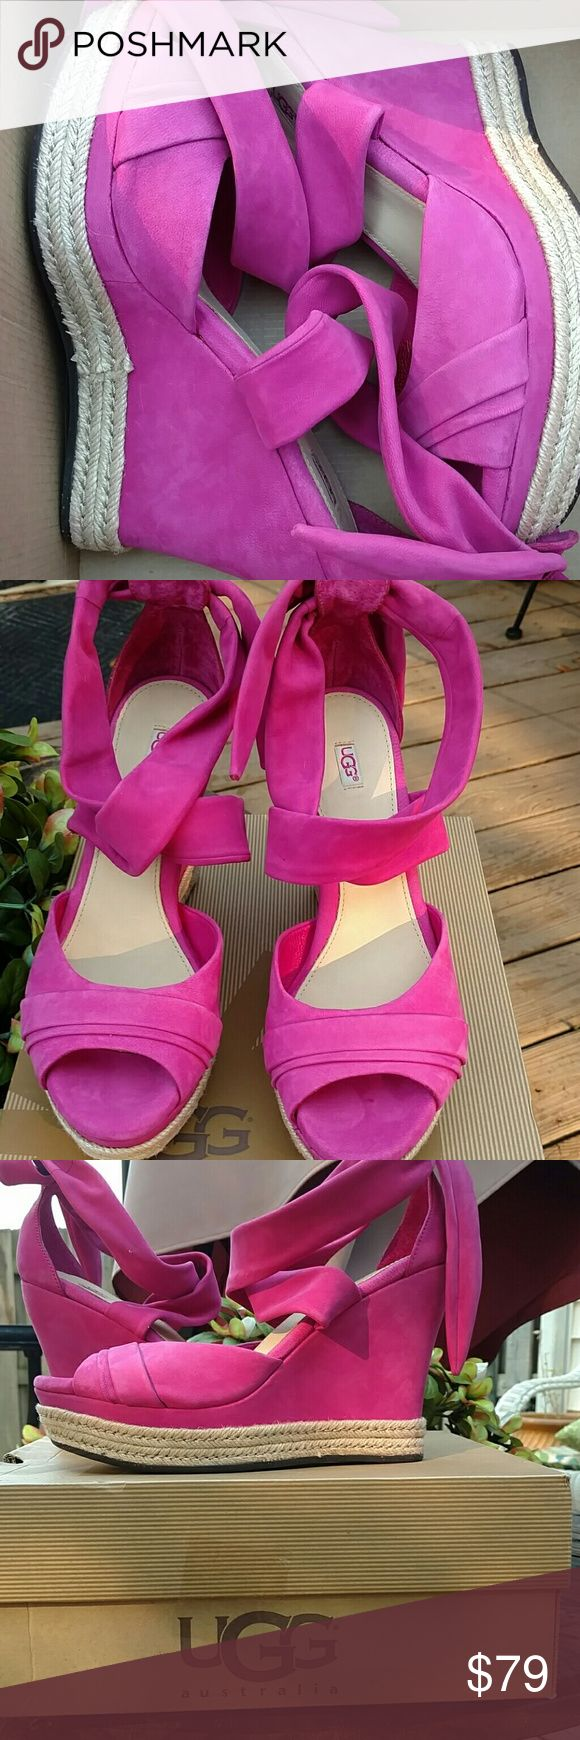 Ugg hot pink Lucy edges! Gorgeous brand new UGG wedges. Hot pink feel like suede! UGG Shoes Sandals